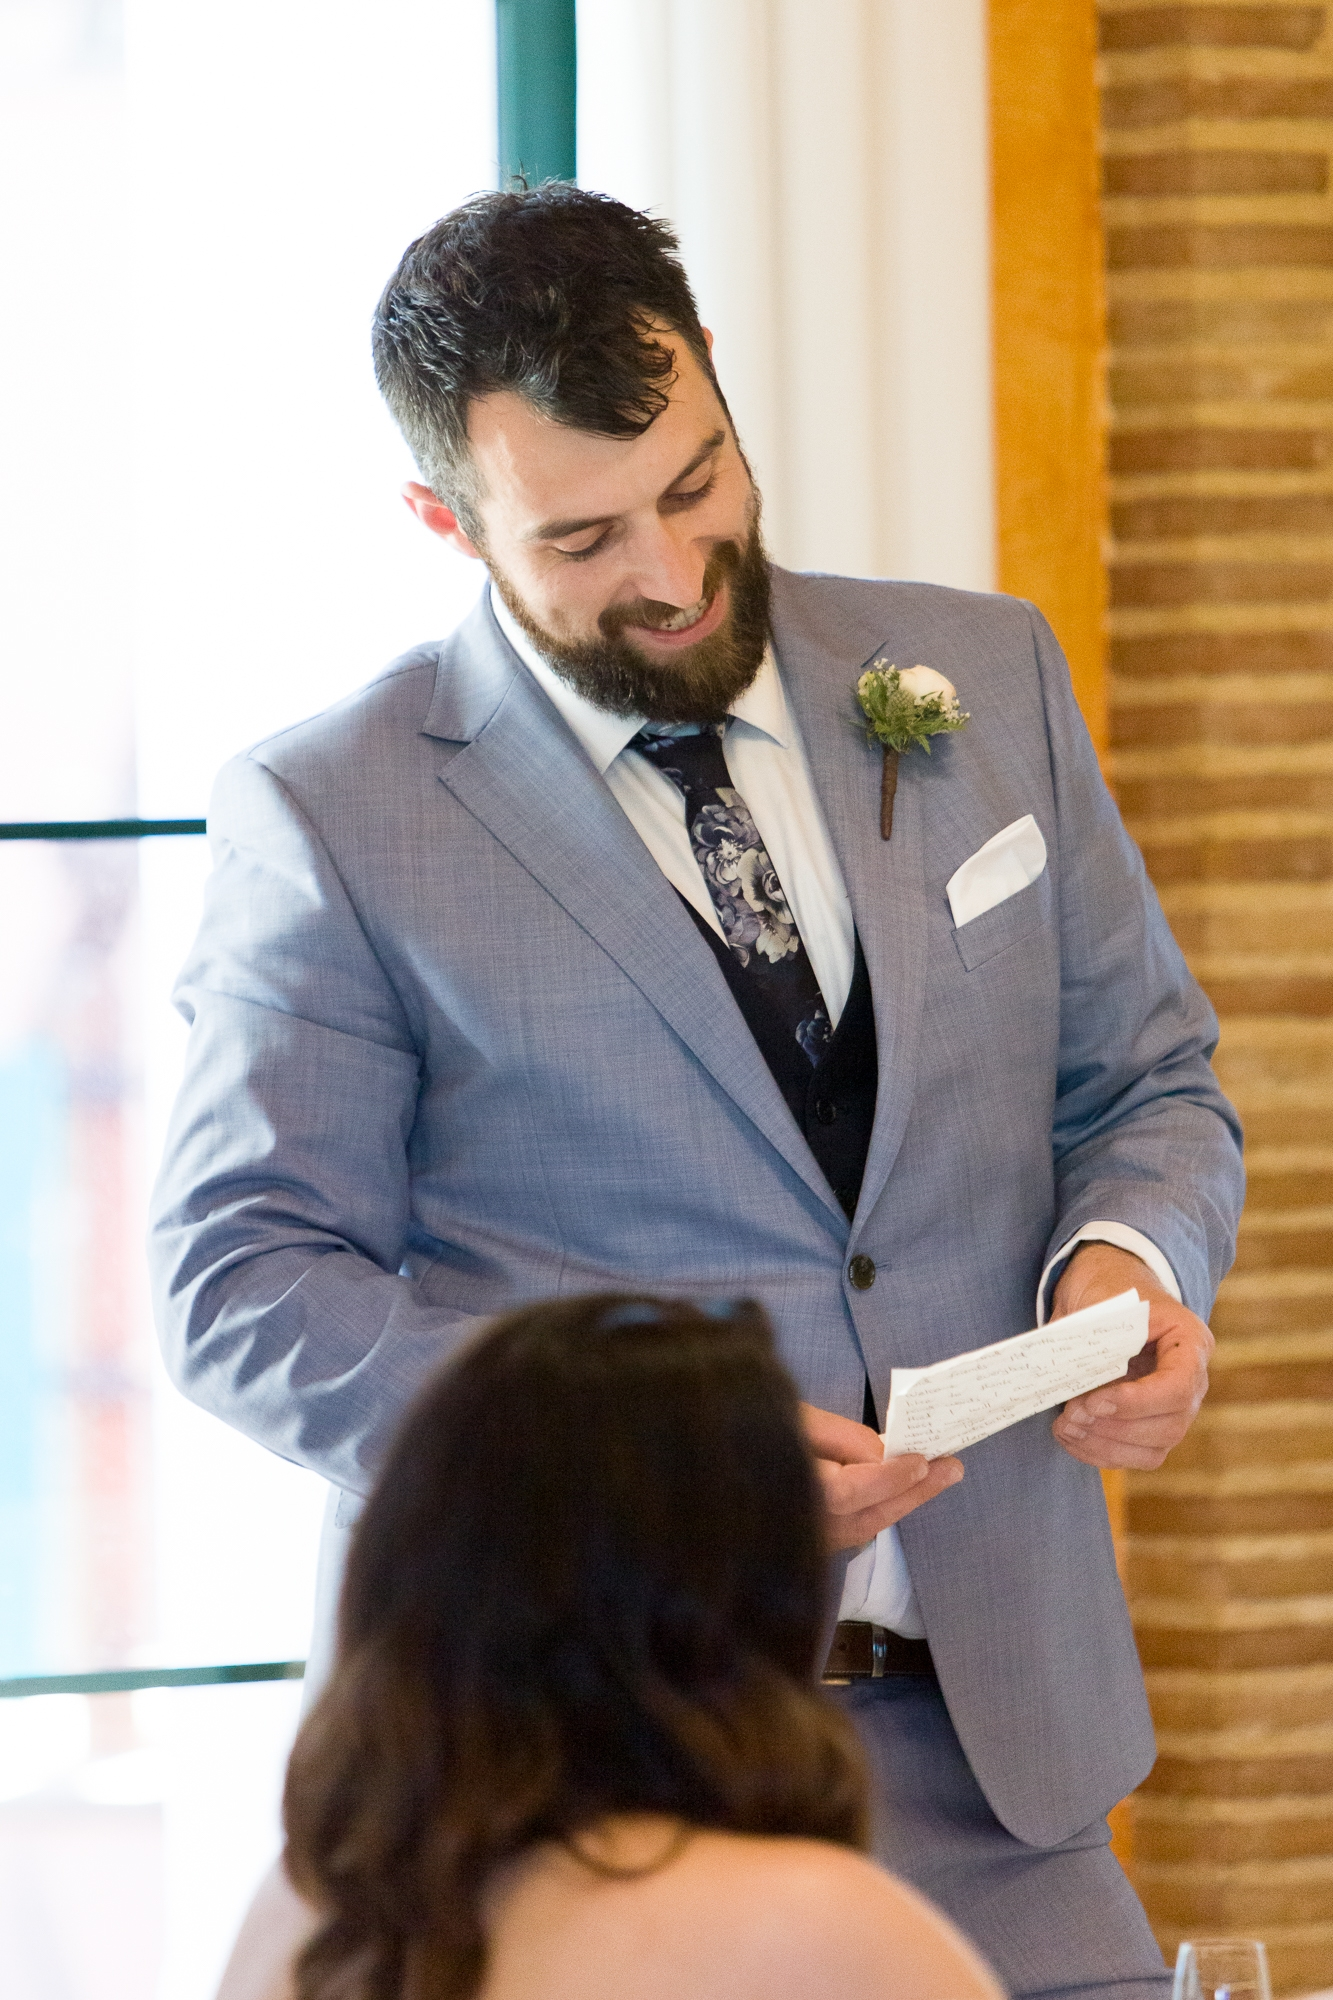 groom wearing light blue suit gives speech at wedding reception in denia